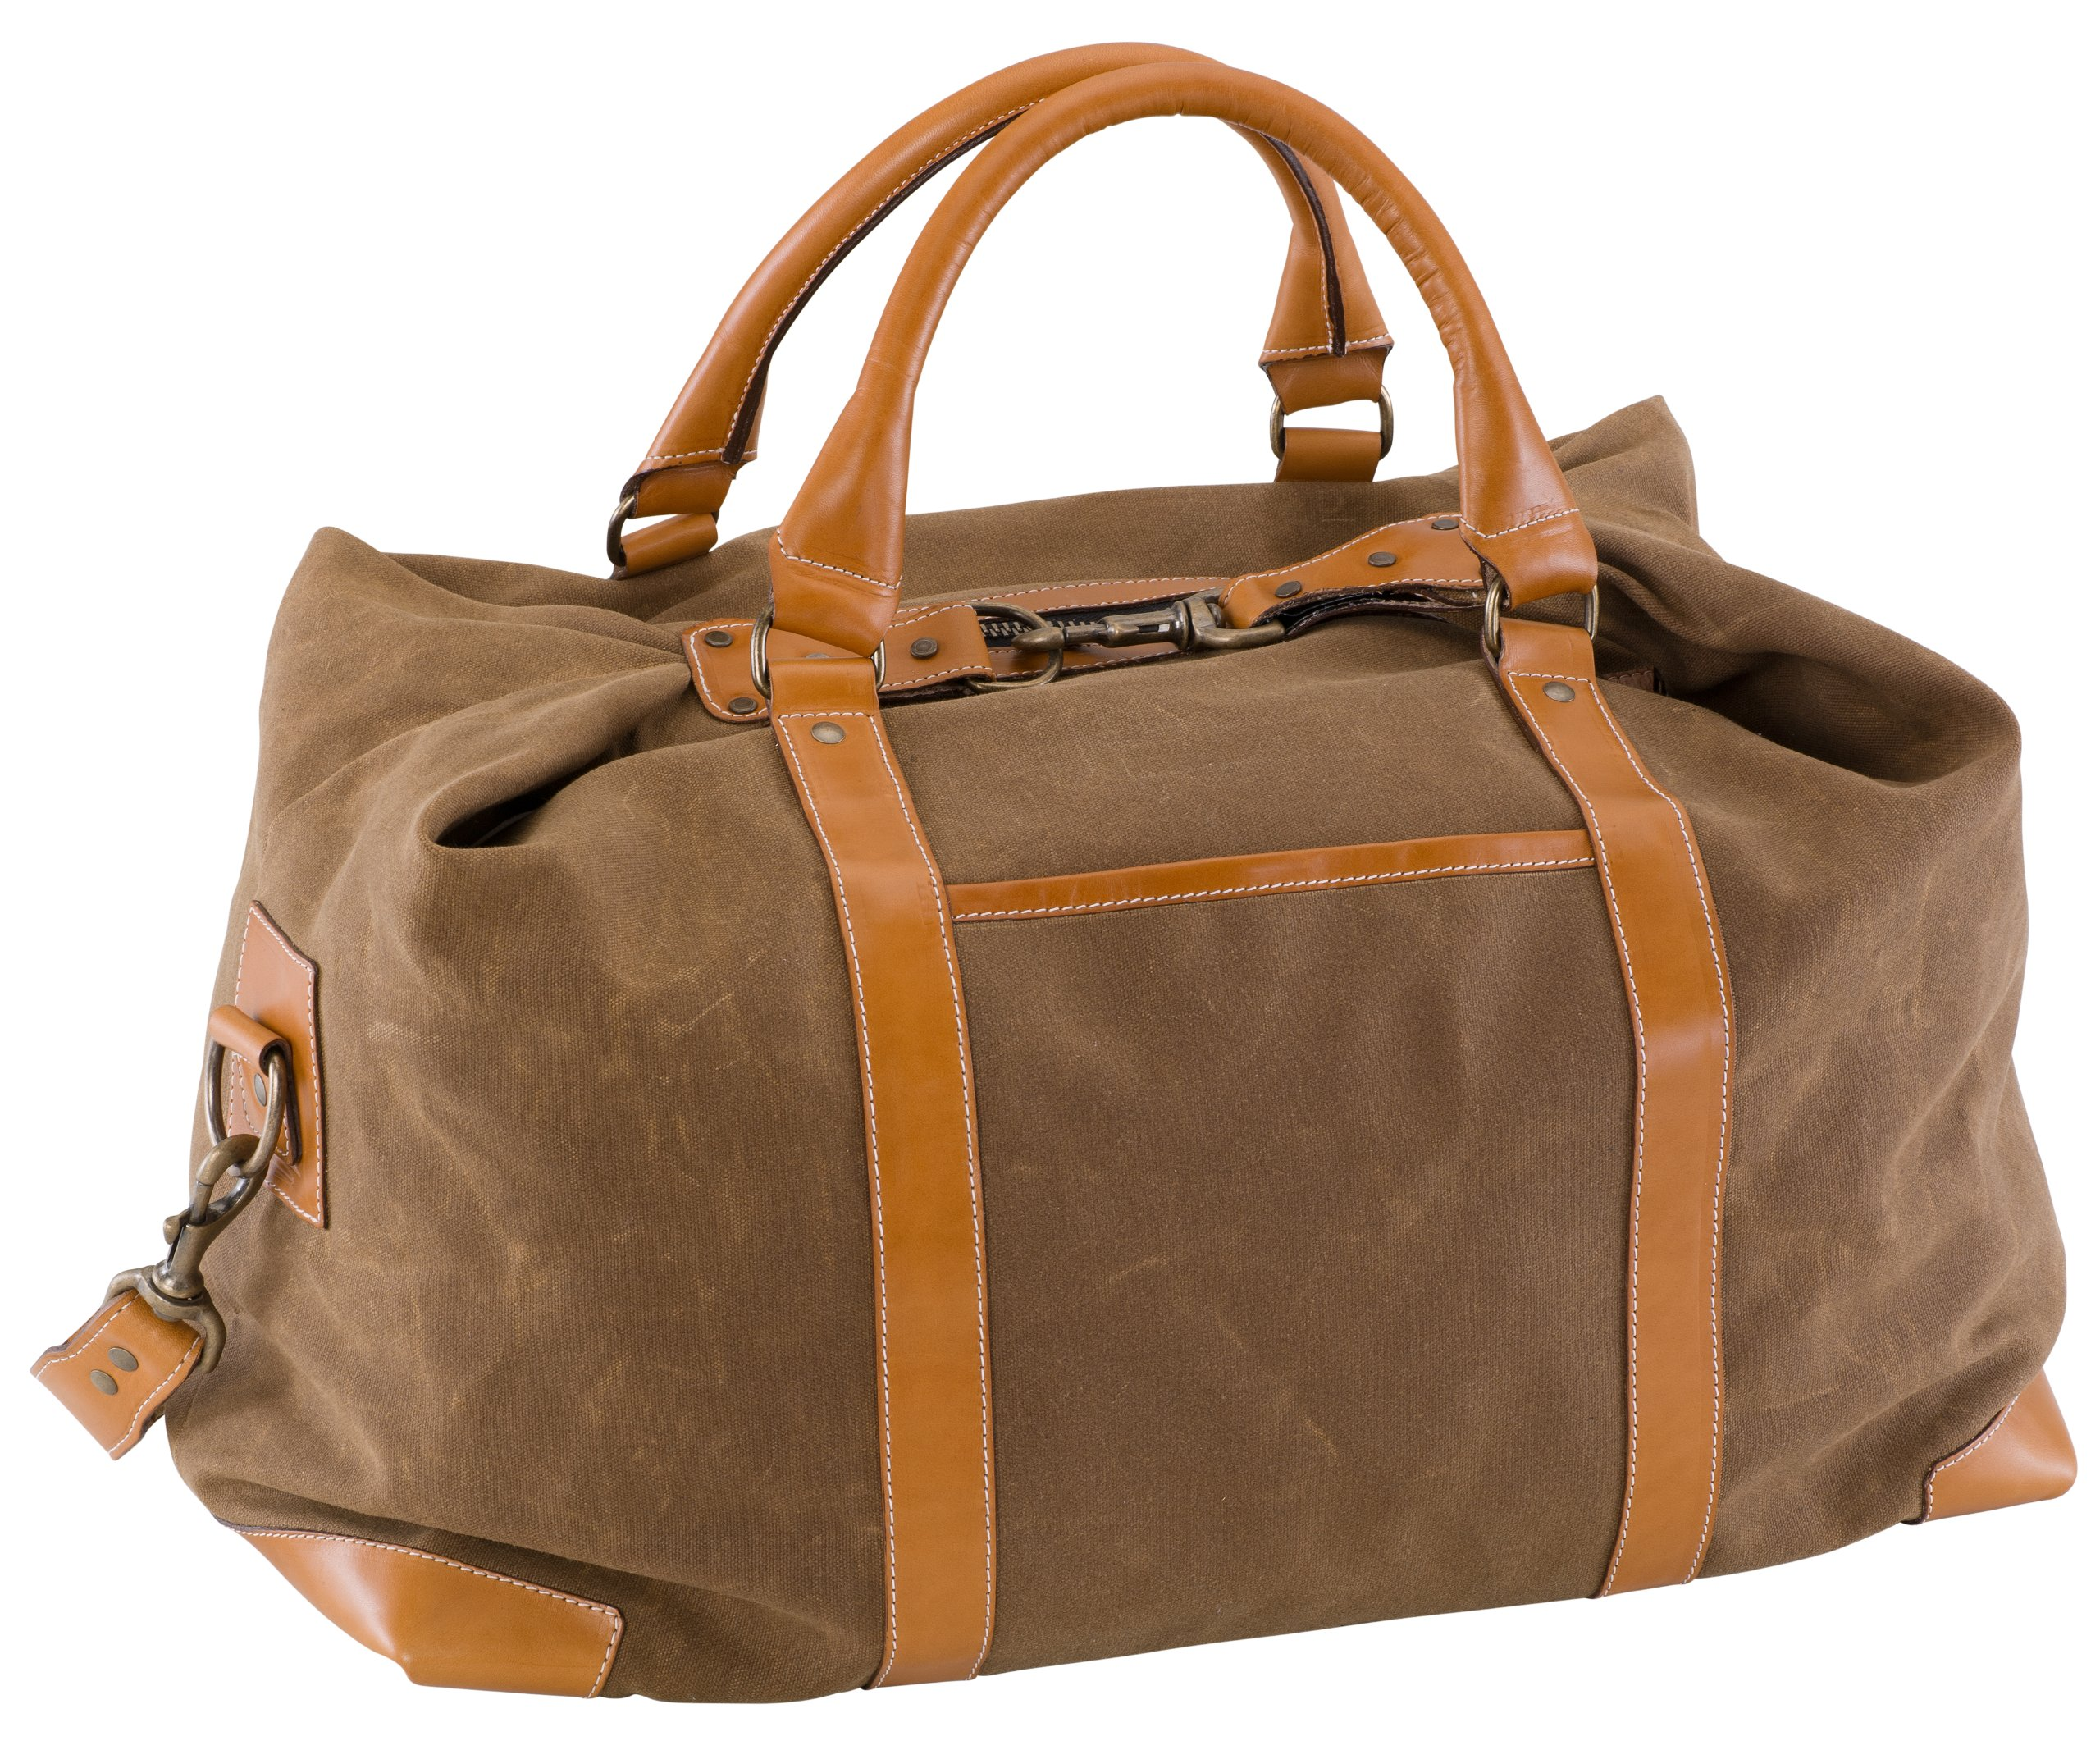 BELDING American Collection Satchel Duffle Bag, Tan